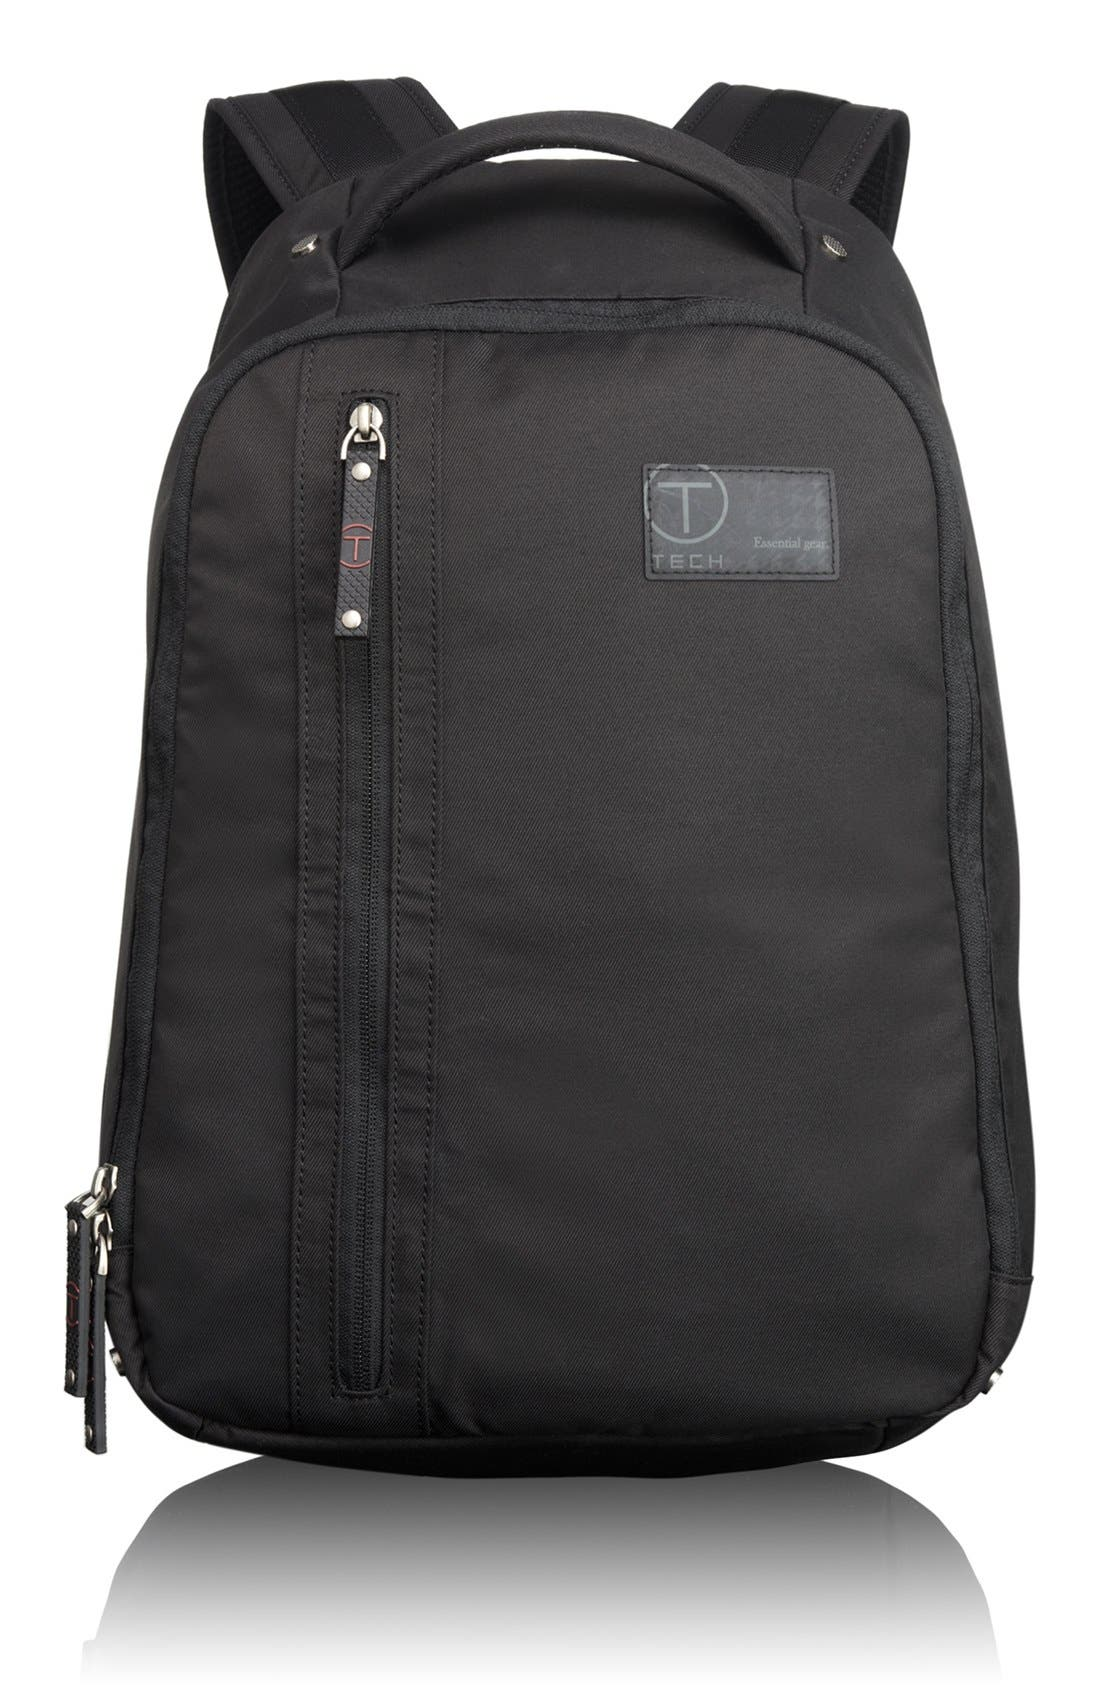 TUMI T-Tech by Tumi 'Icon - Marley' Backpack, Main, color, 002